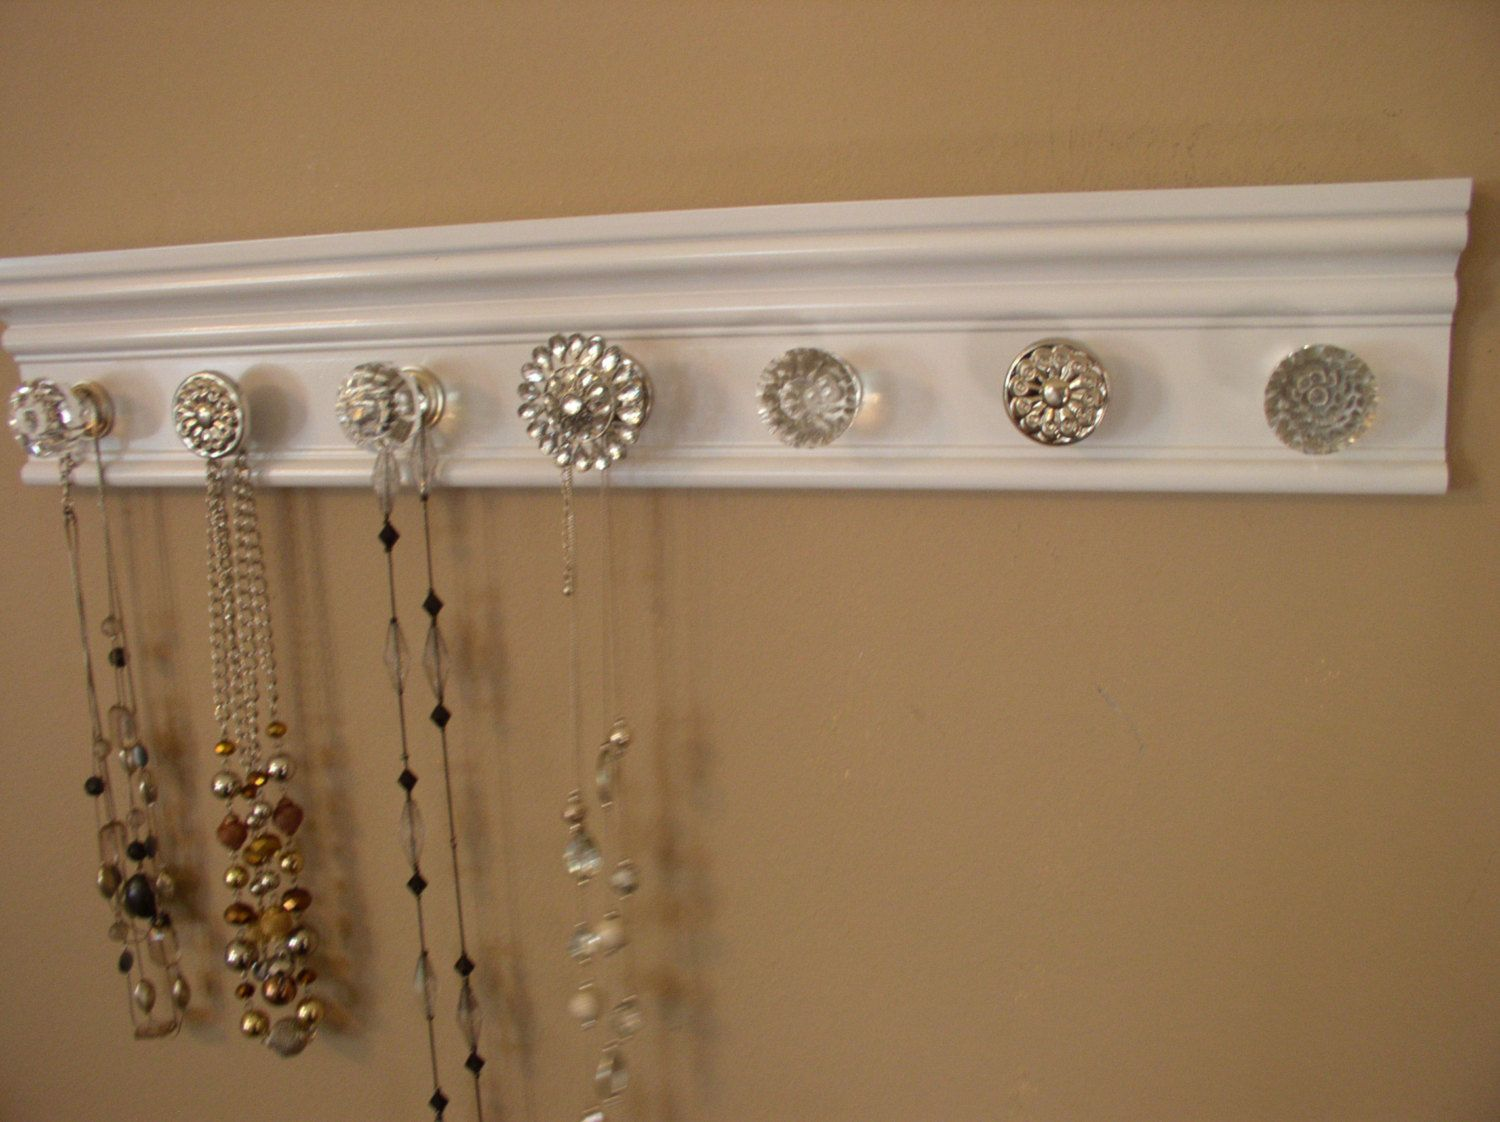 Jewelry Wall Organizer U Choose 57 Or 9 Knobs For This White Jewelry Organizeralso Add